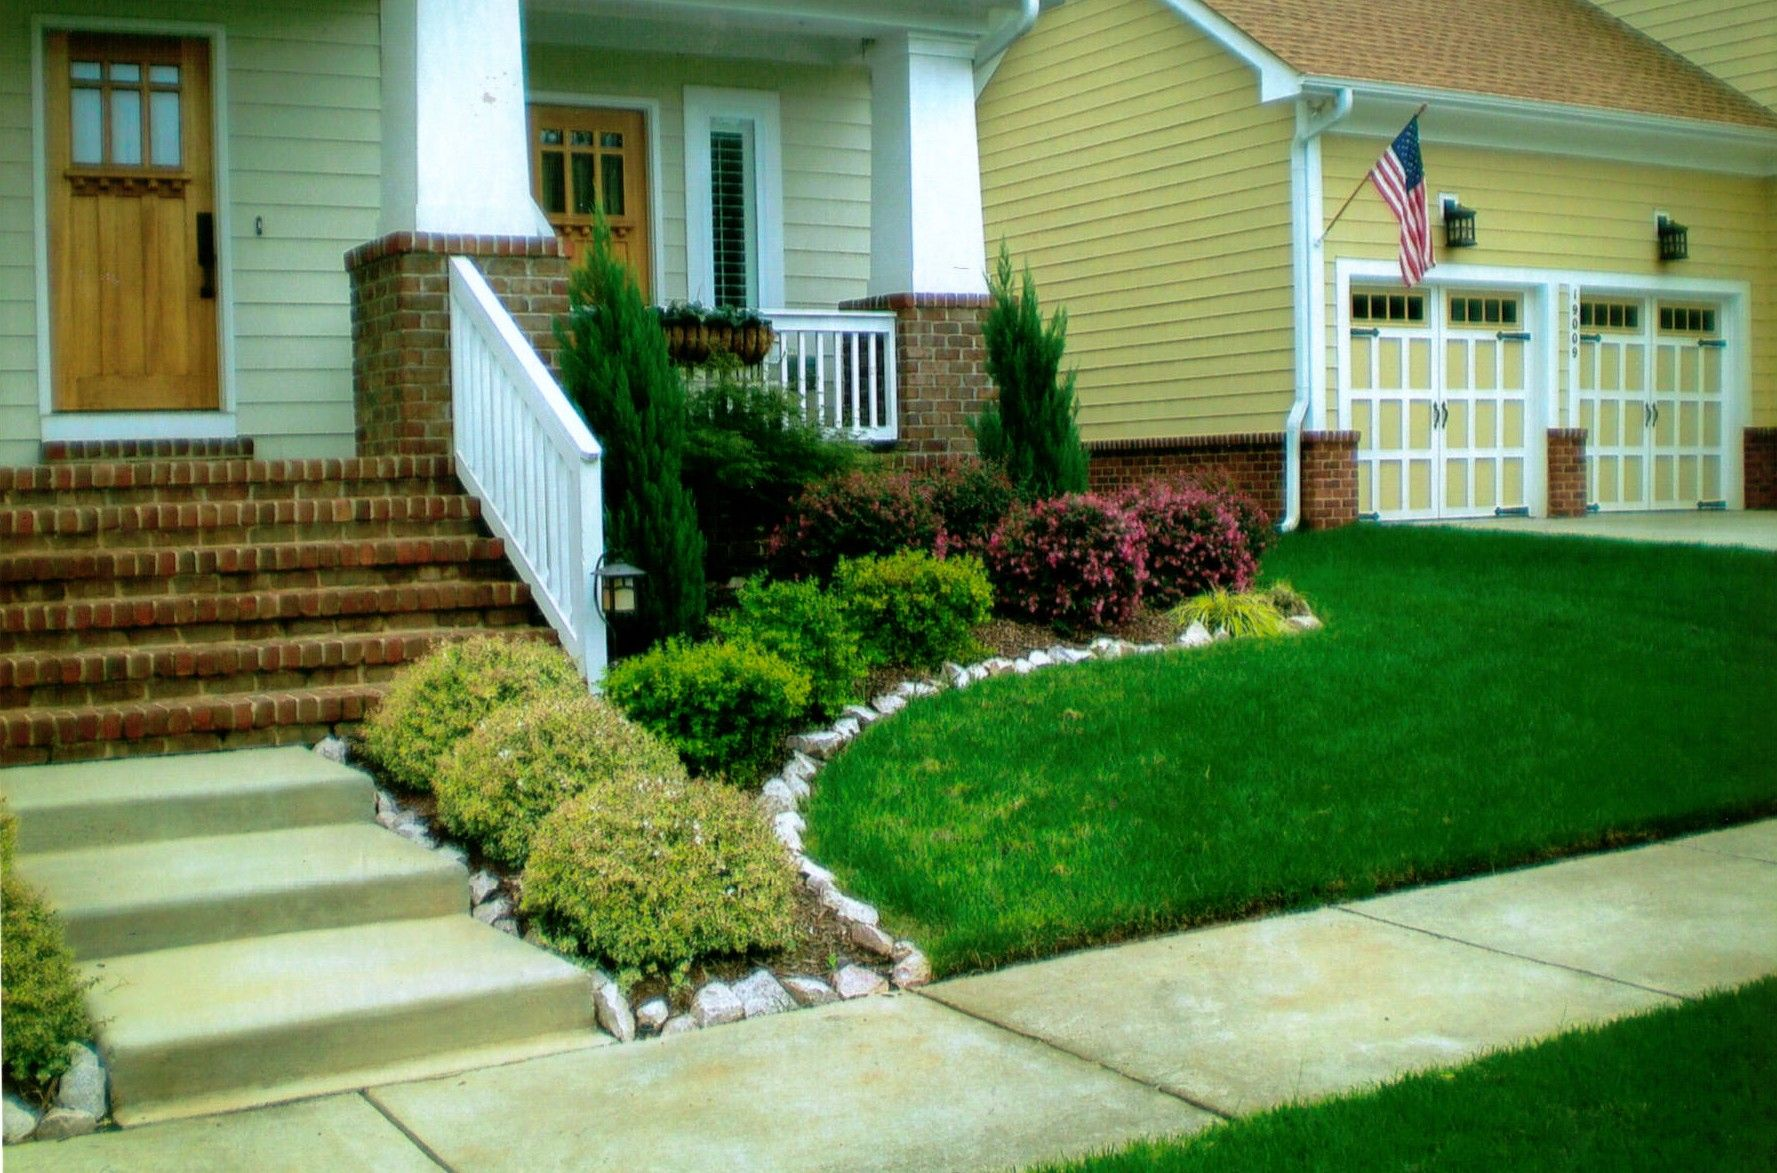 Small garden landscaping design ideas for front yard jpg - Garden Simple Modern House With Porch And Brick Wall Exposed Pile And Stair Plus Small Backyard Landscape Designsmall